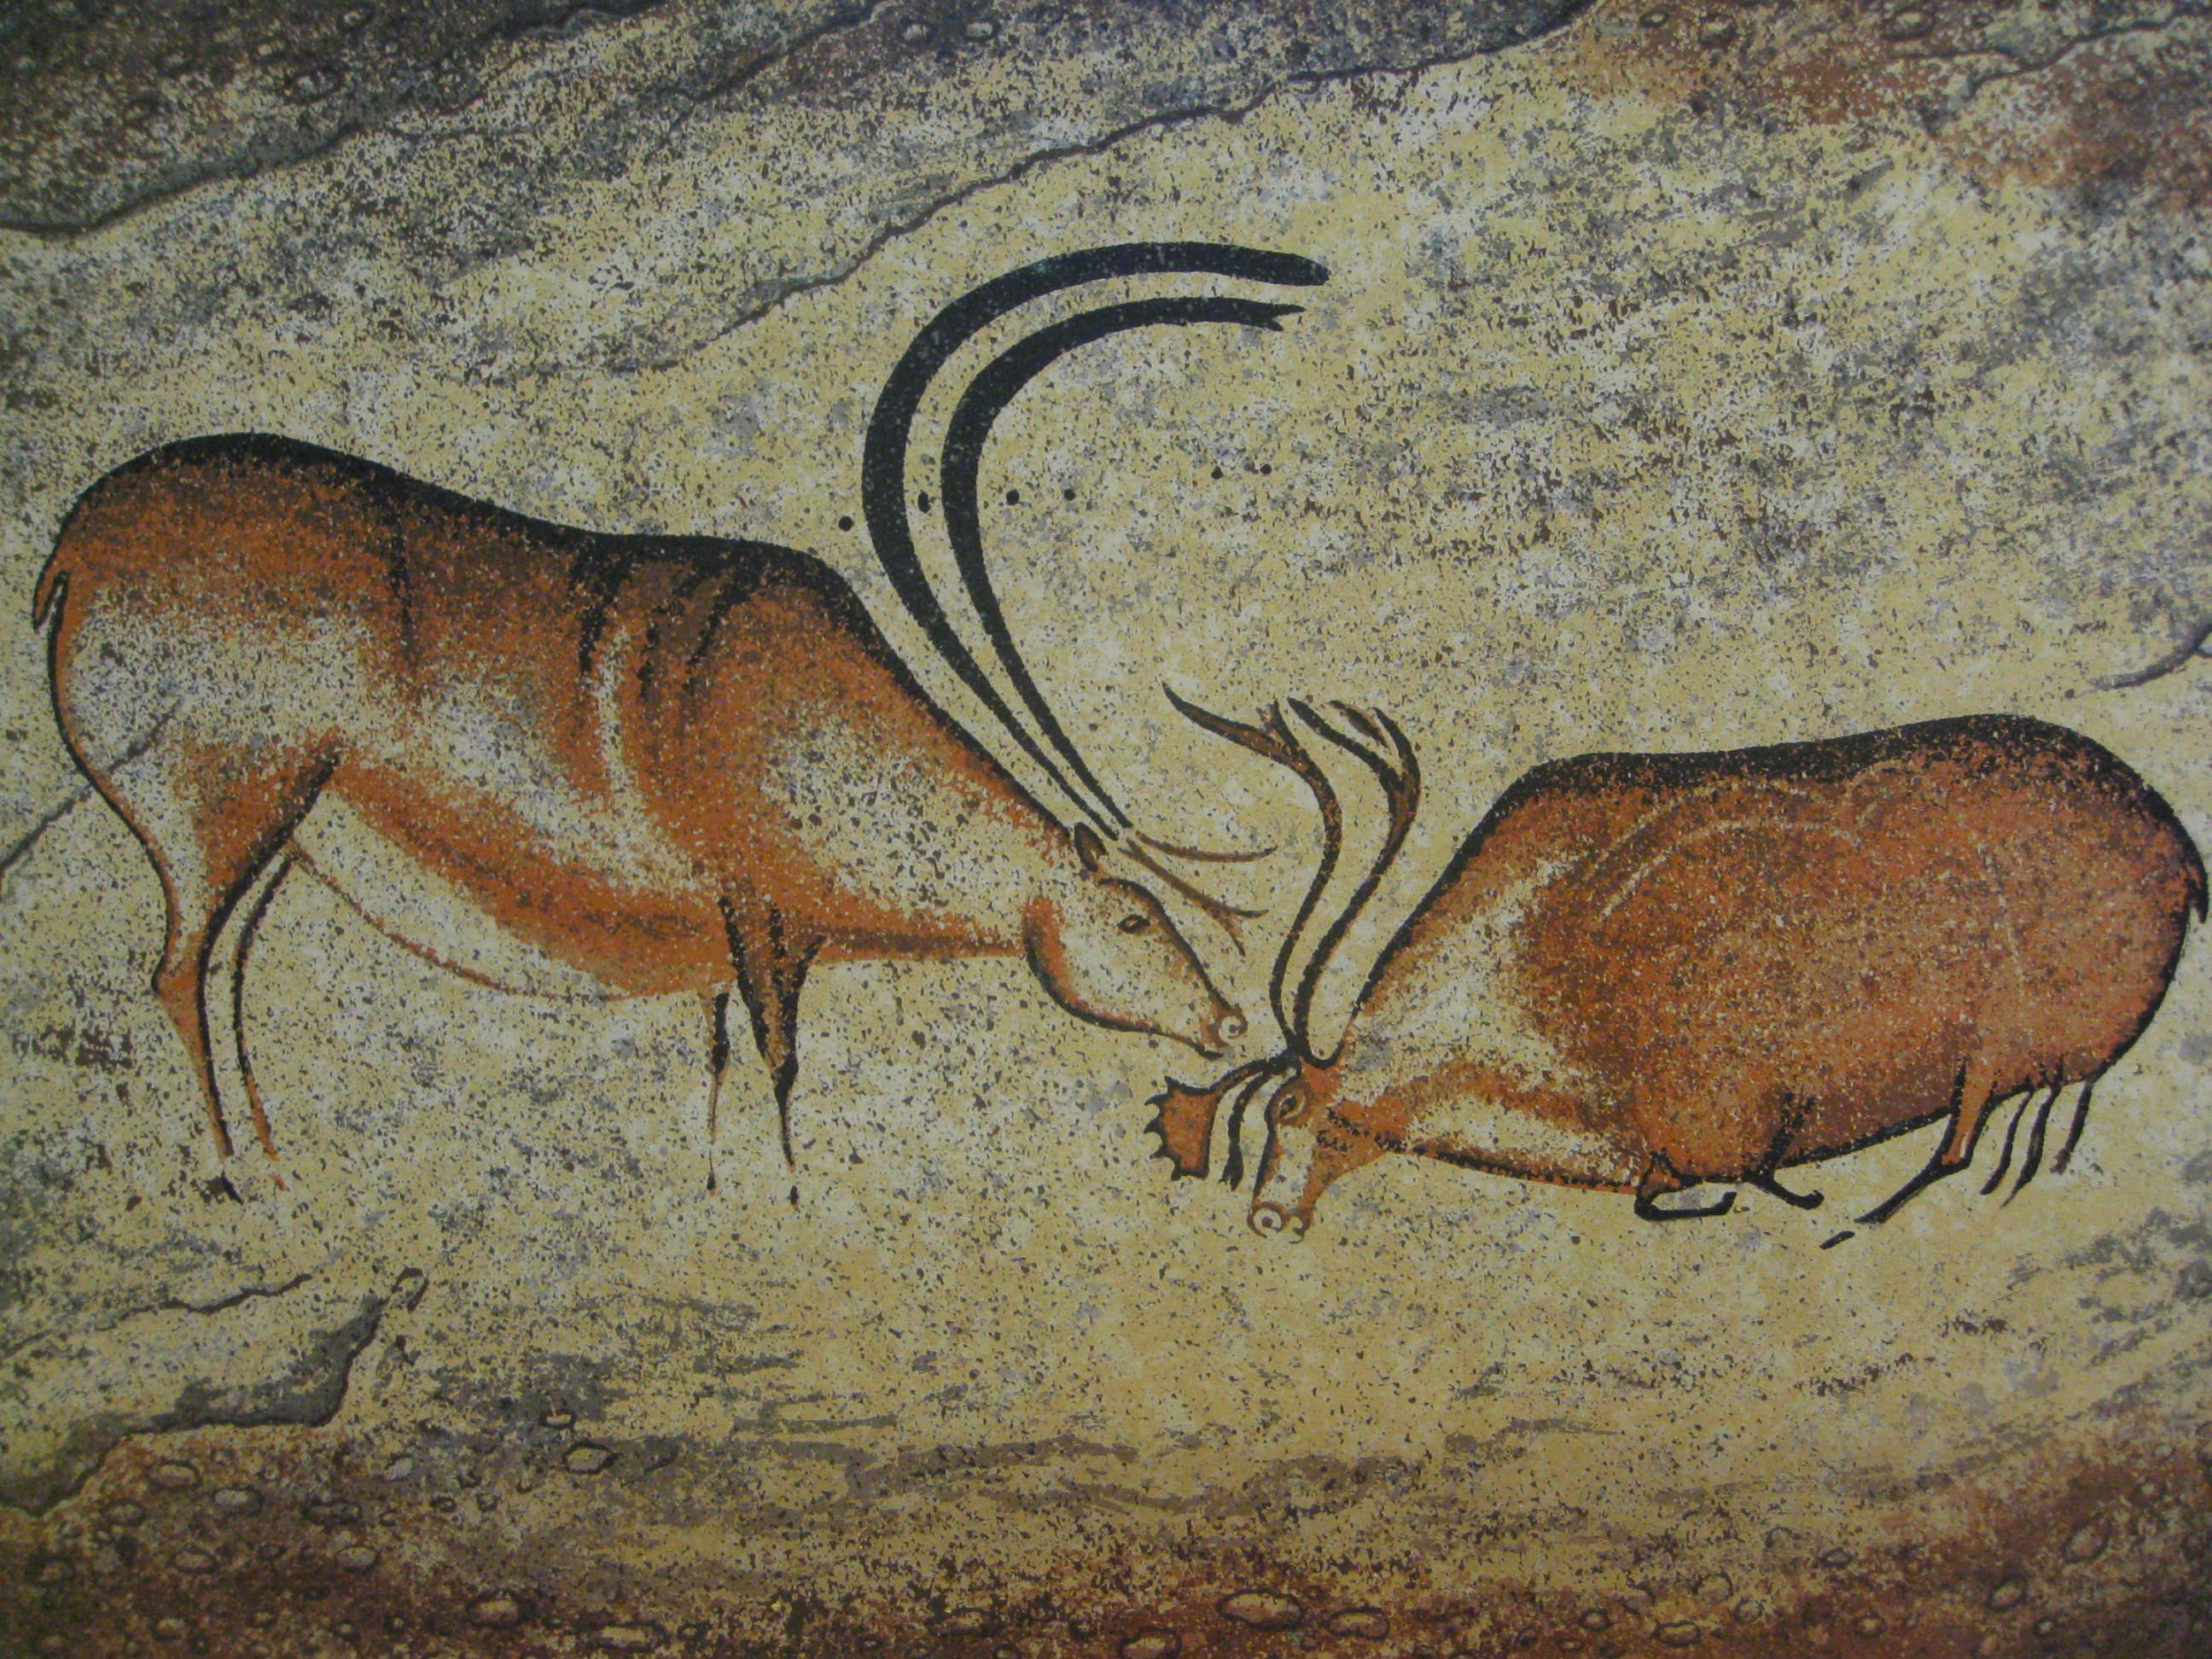 Two deer, one is a stag with large antlers, while another, with smaller antlers is kneeling before it.